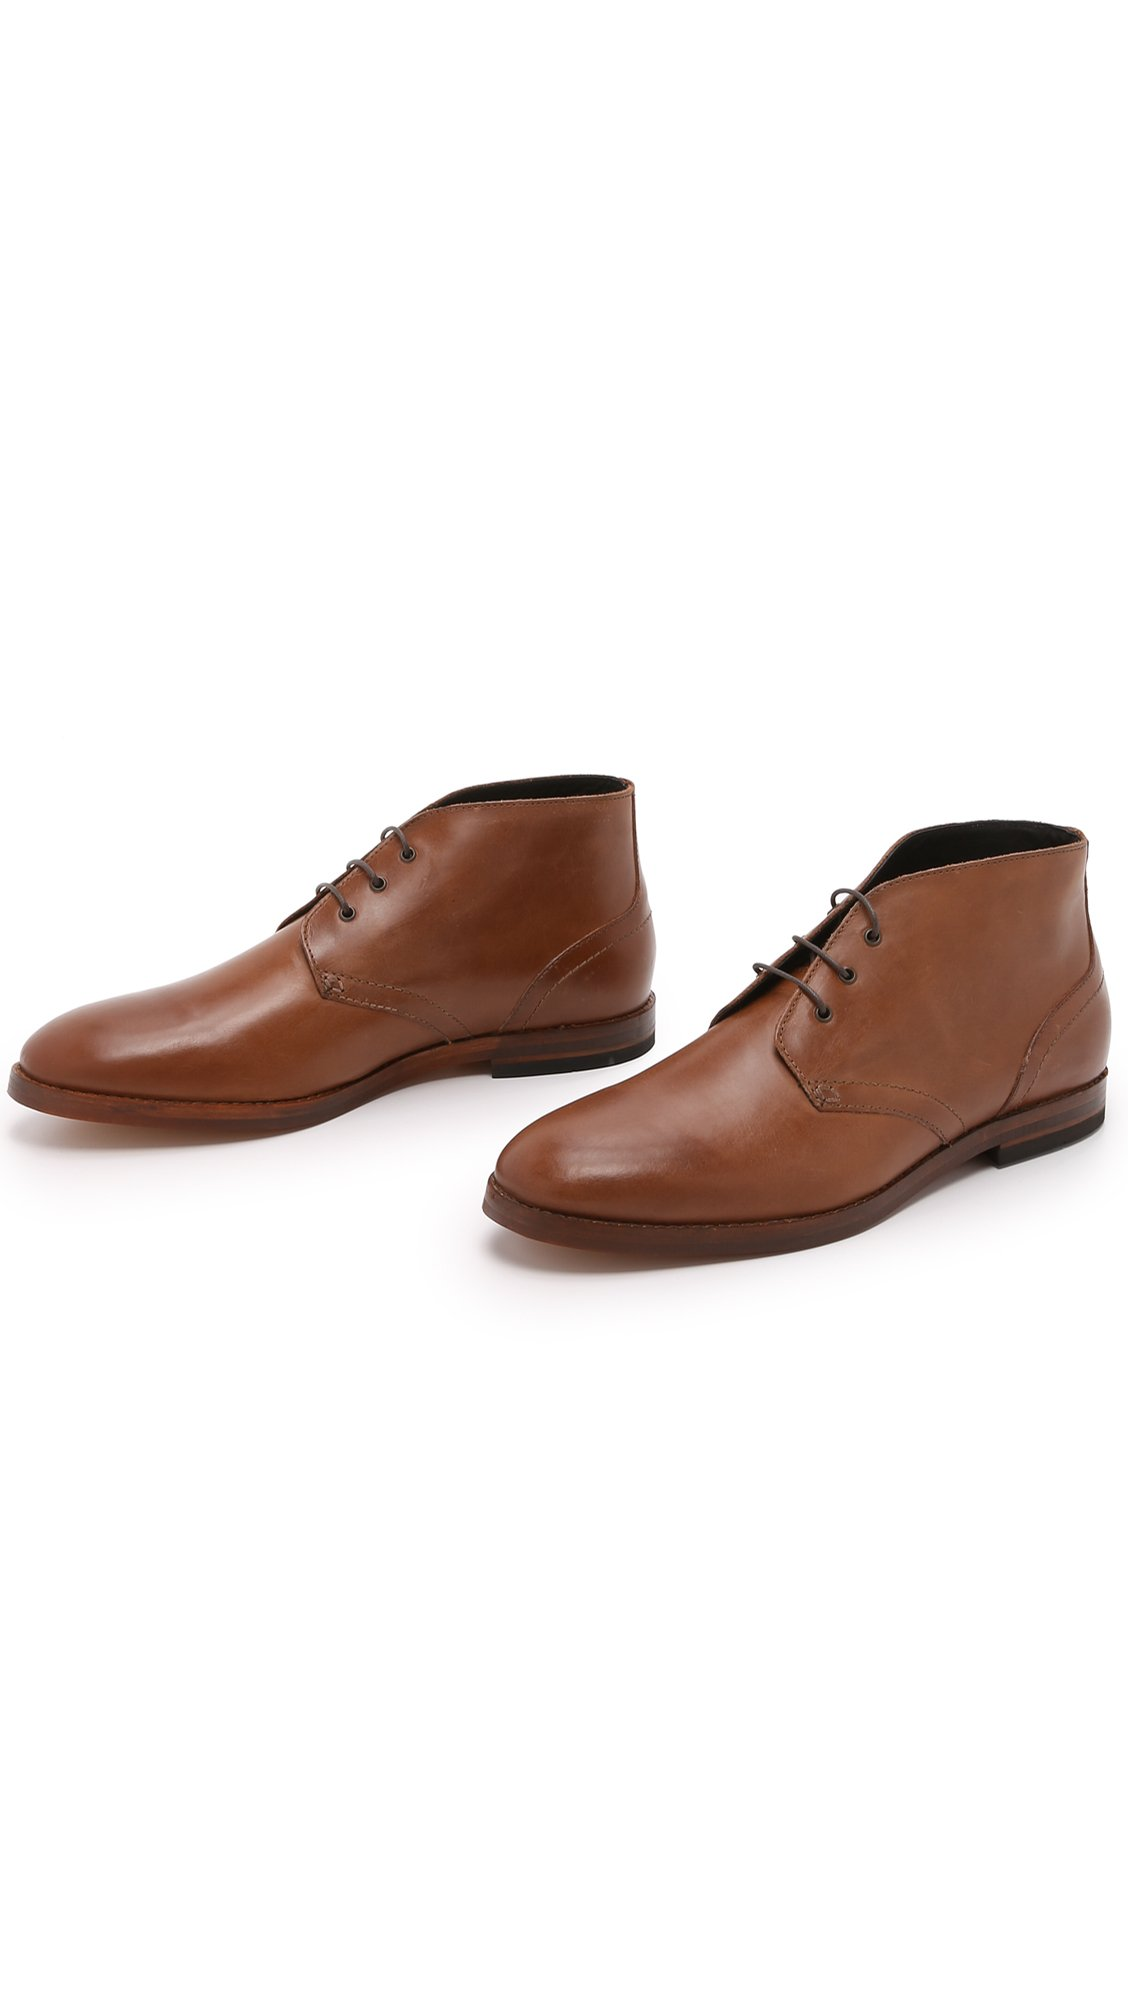 h by hudson houghton 2 leather chukka boots in brown for. Black Bedroom Furniture Sets. Home Design Ideas